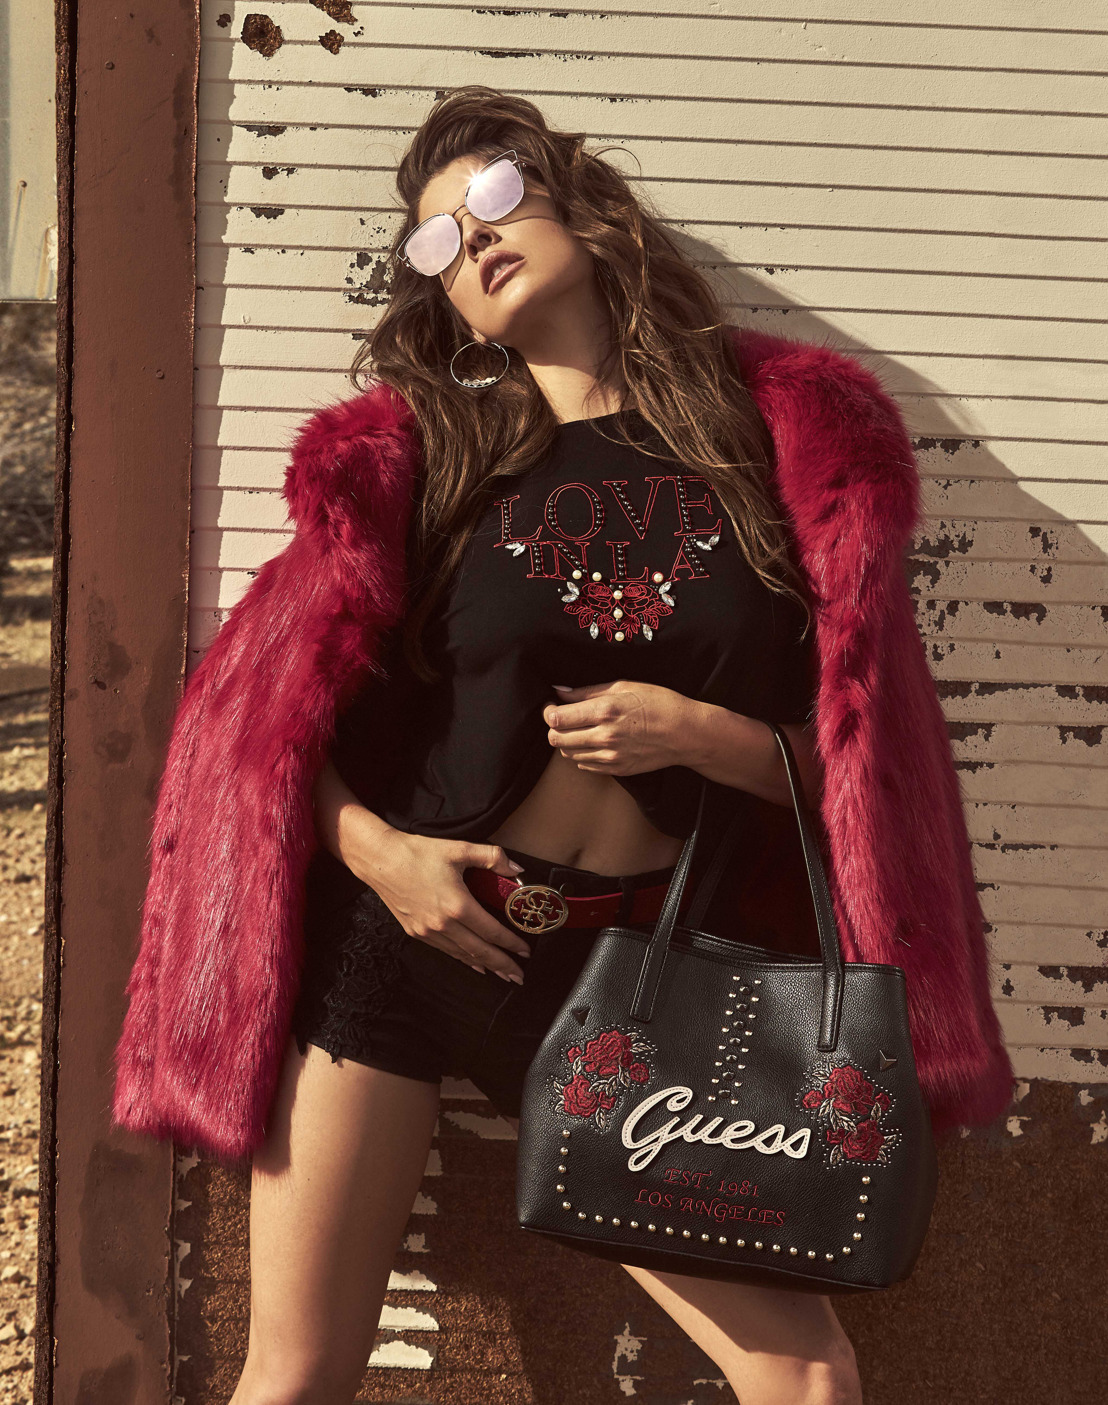 GUESS Handbags FW18